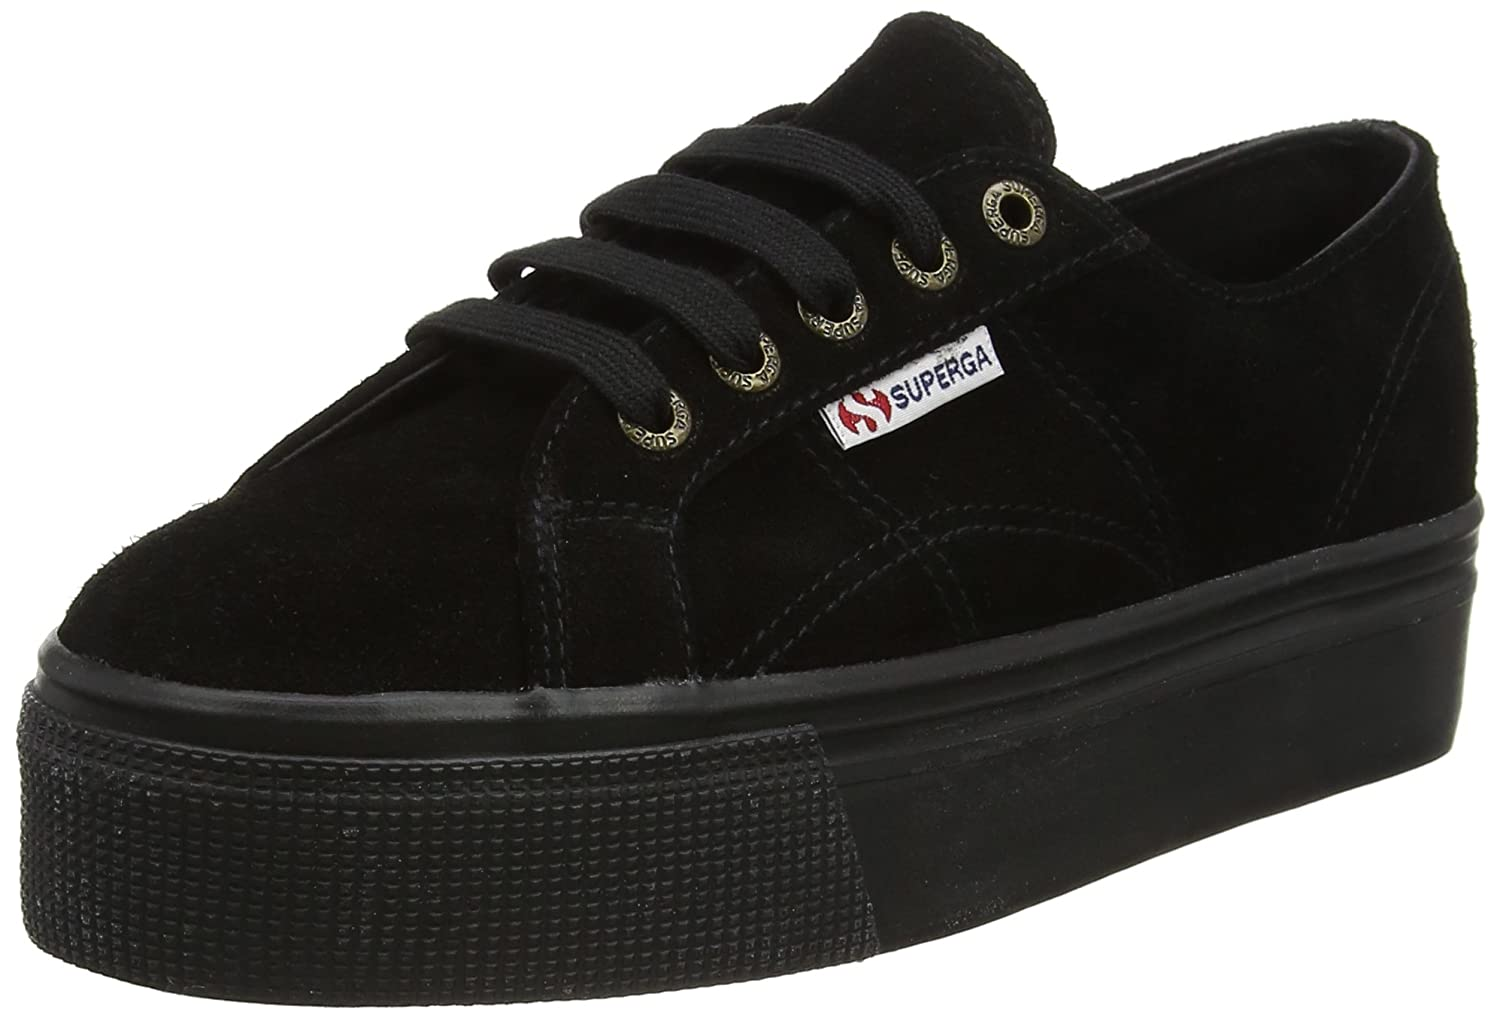 Superga 2790-suew, Women's Flatform Pumps Black